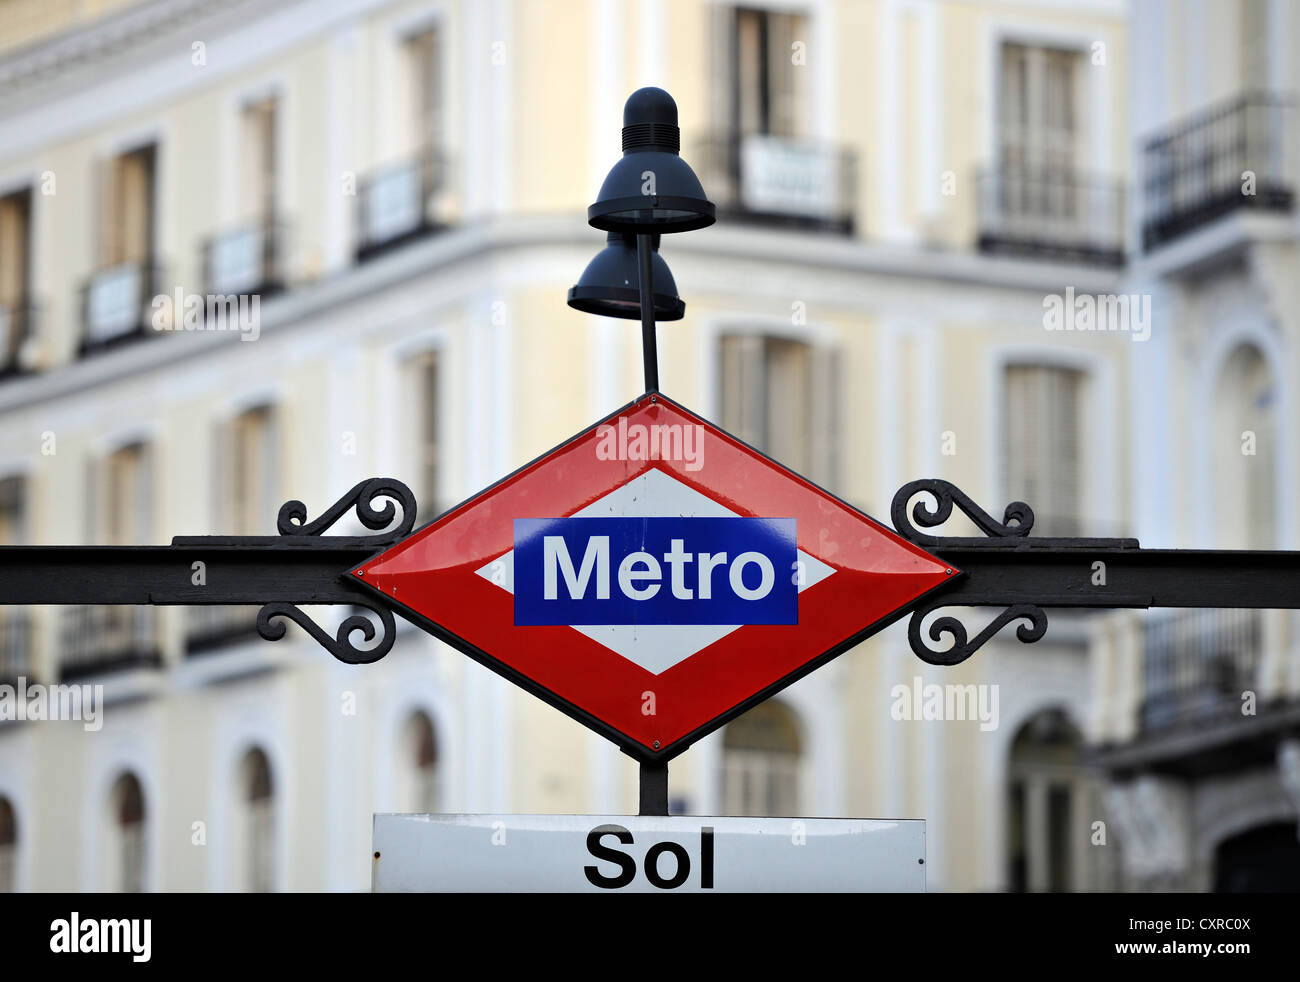 Sol metro station in front of the Presidencia de la Comunidad de Madrid building, Antigua Casa de Correos building, - Stock Image